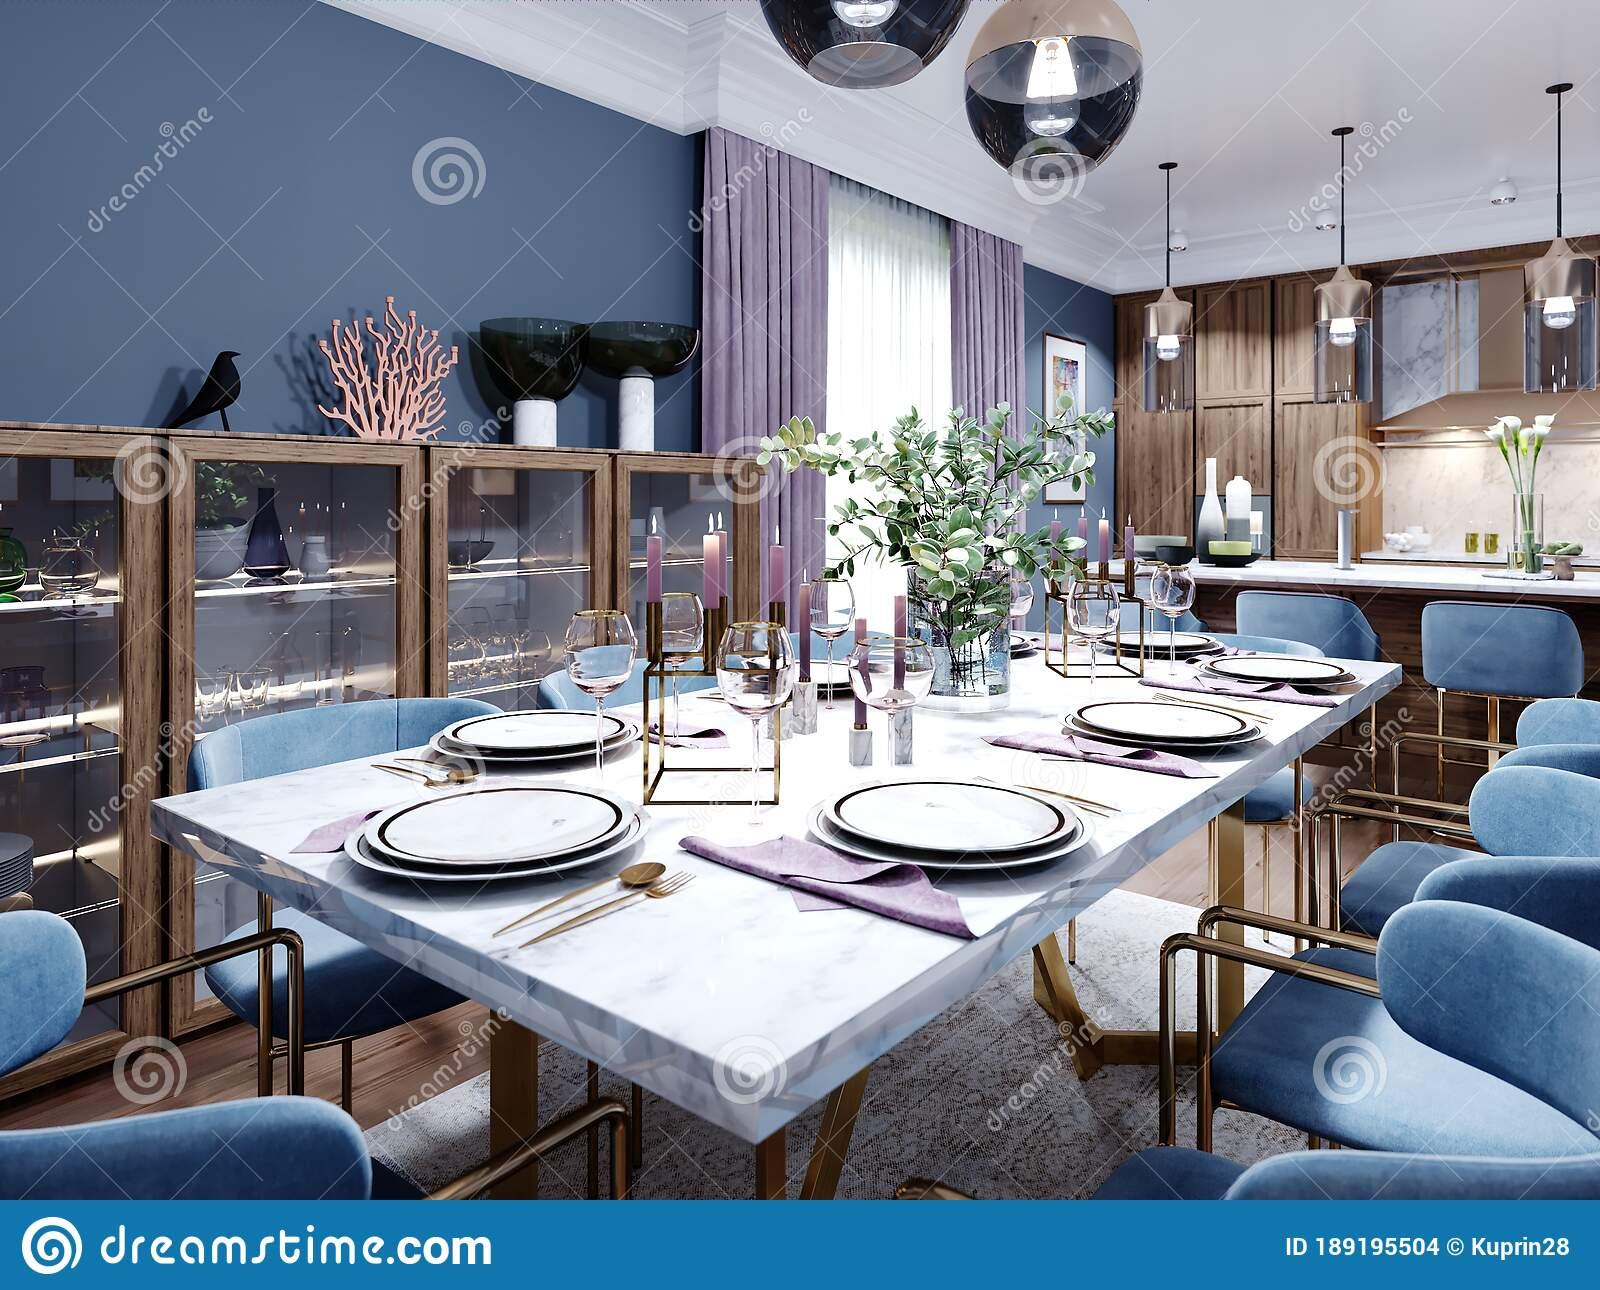 Large Dining And Dining Room Table With A Kitchen In A Fashionable Modern Design Wooden Furniture Interior In Brown And Blue Stock Illustration Illustration Of Home Cupboard 189195504